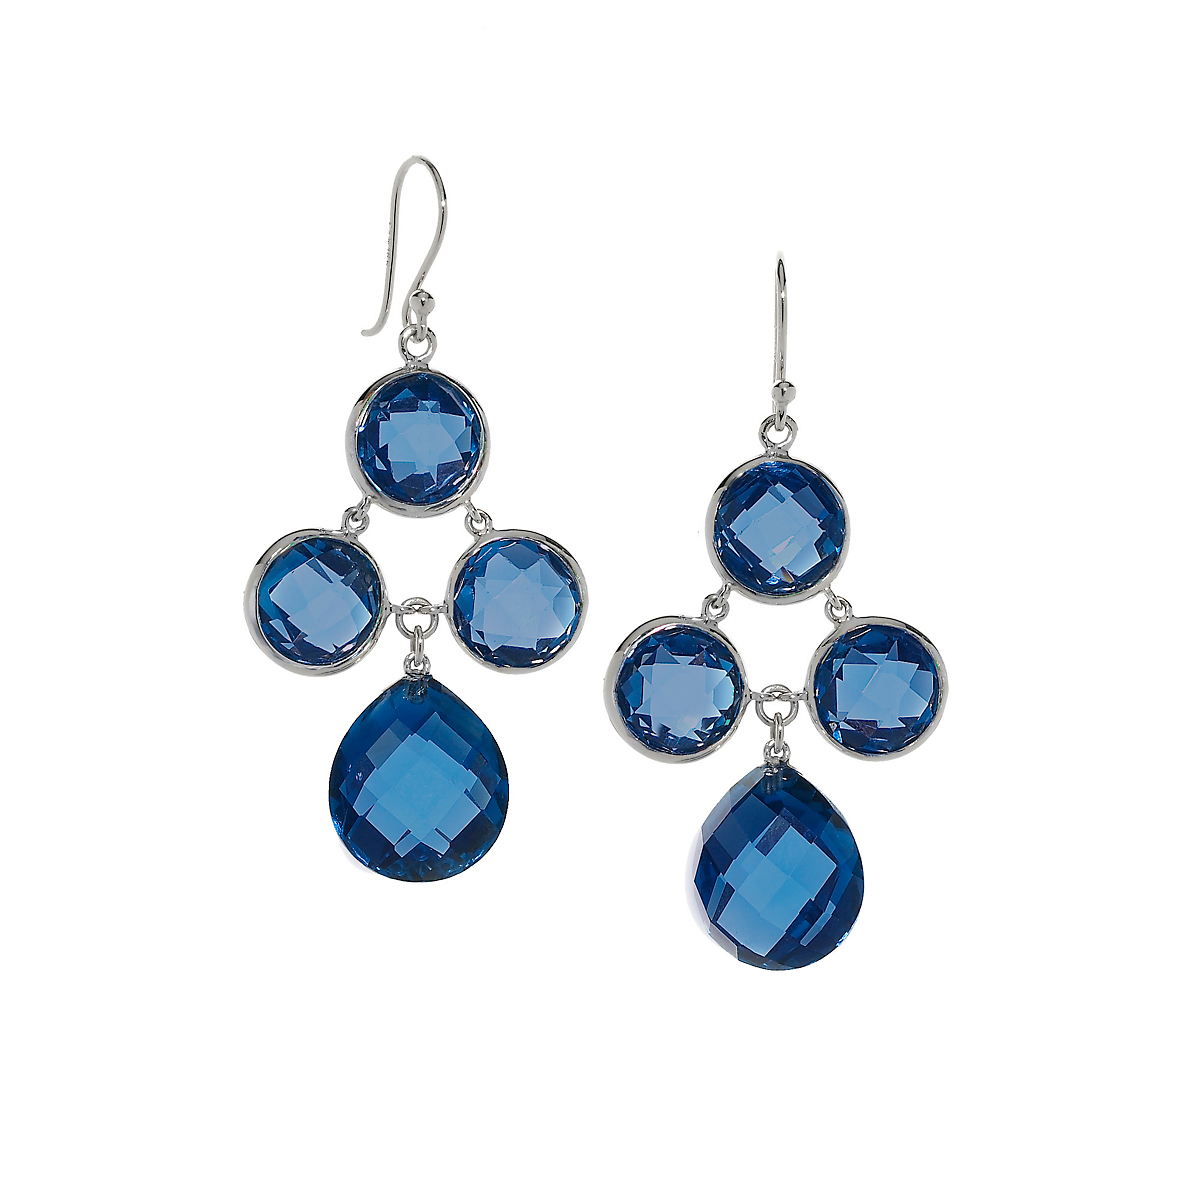 Elizabeth Showers Lab-Created Blue Sapphire Silver Audrey Earrings